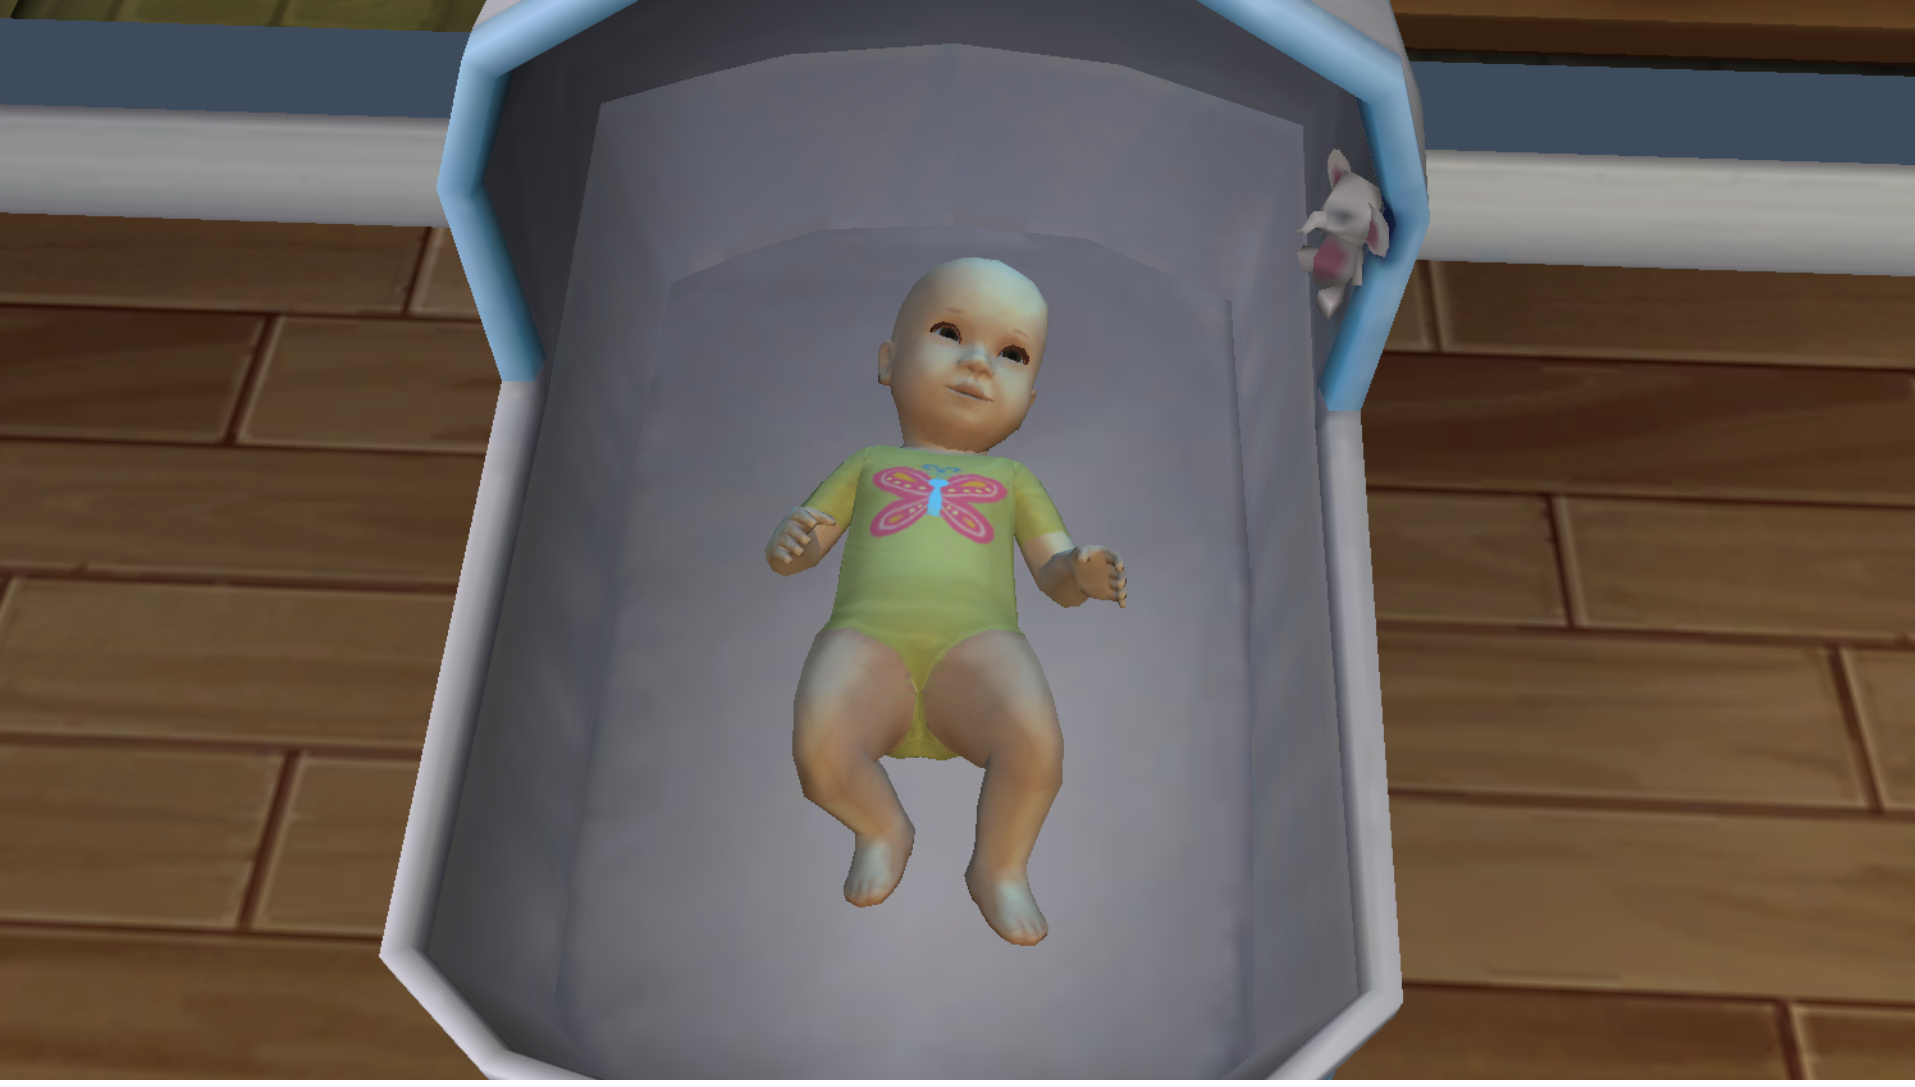 The Sims 4 - a baby in her crib